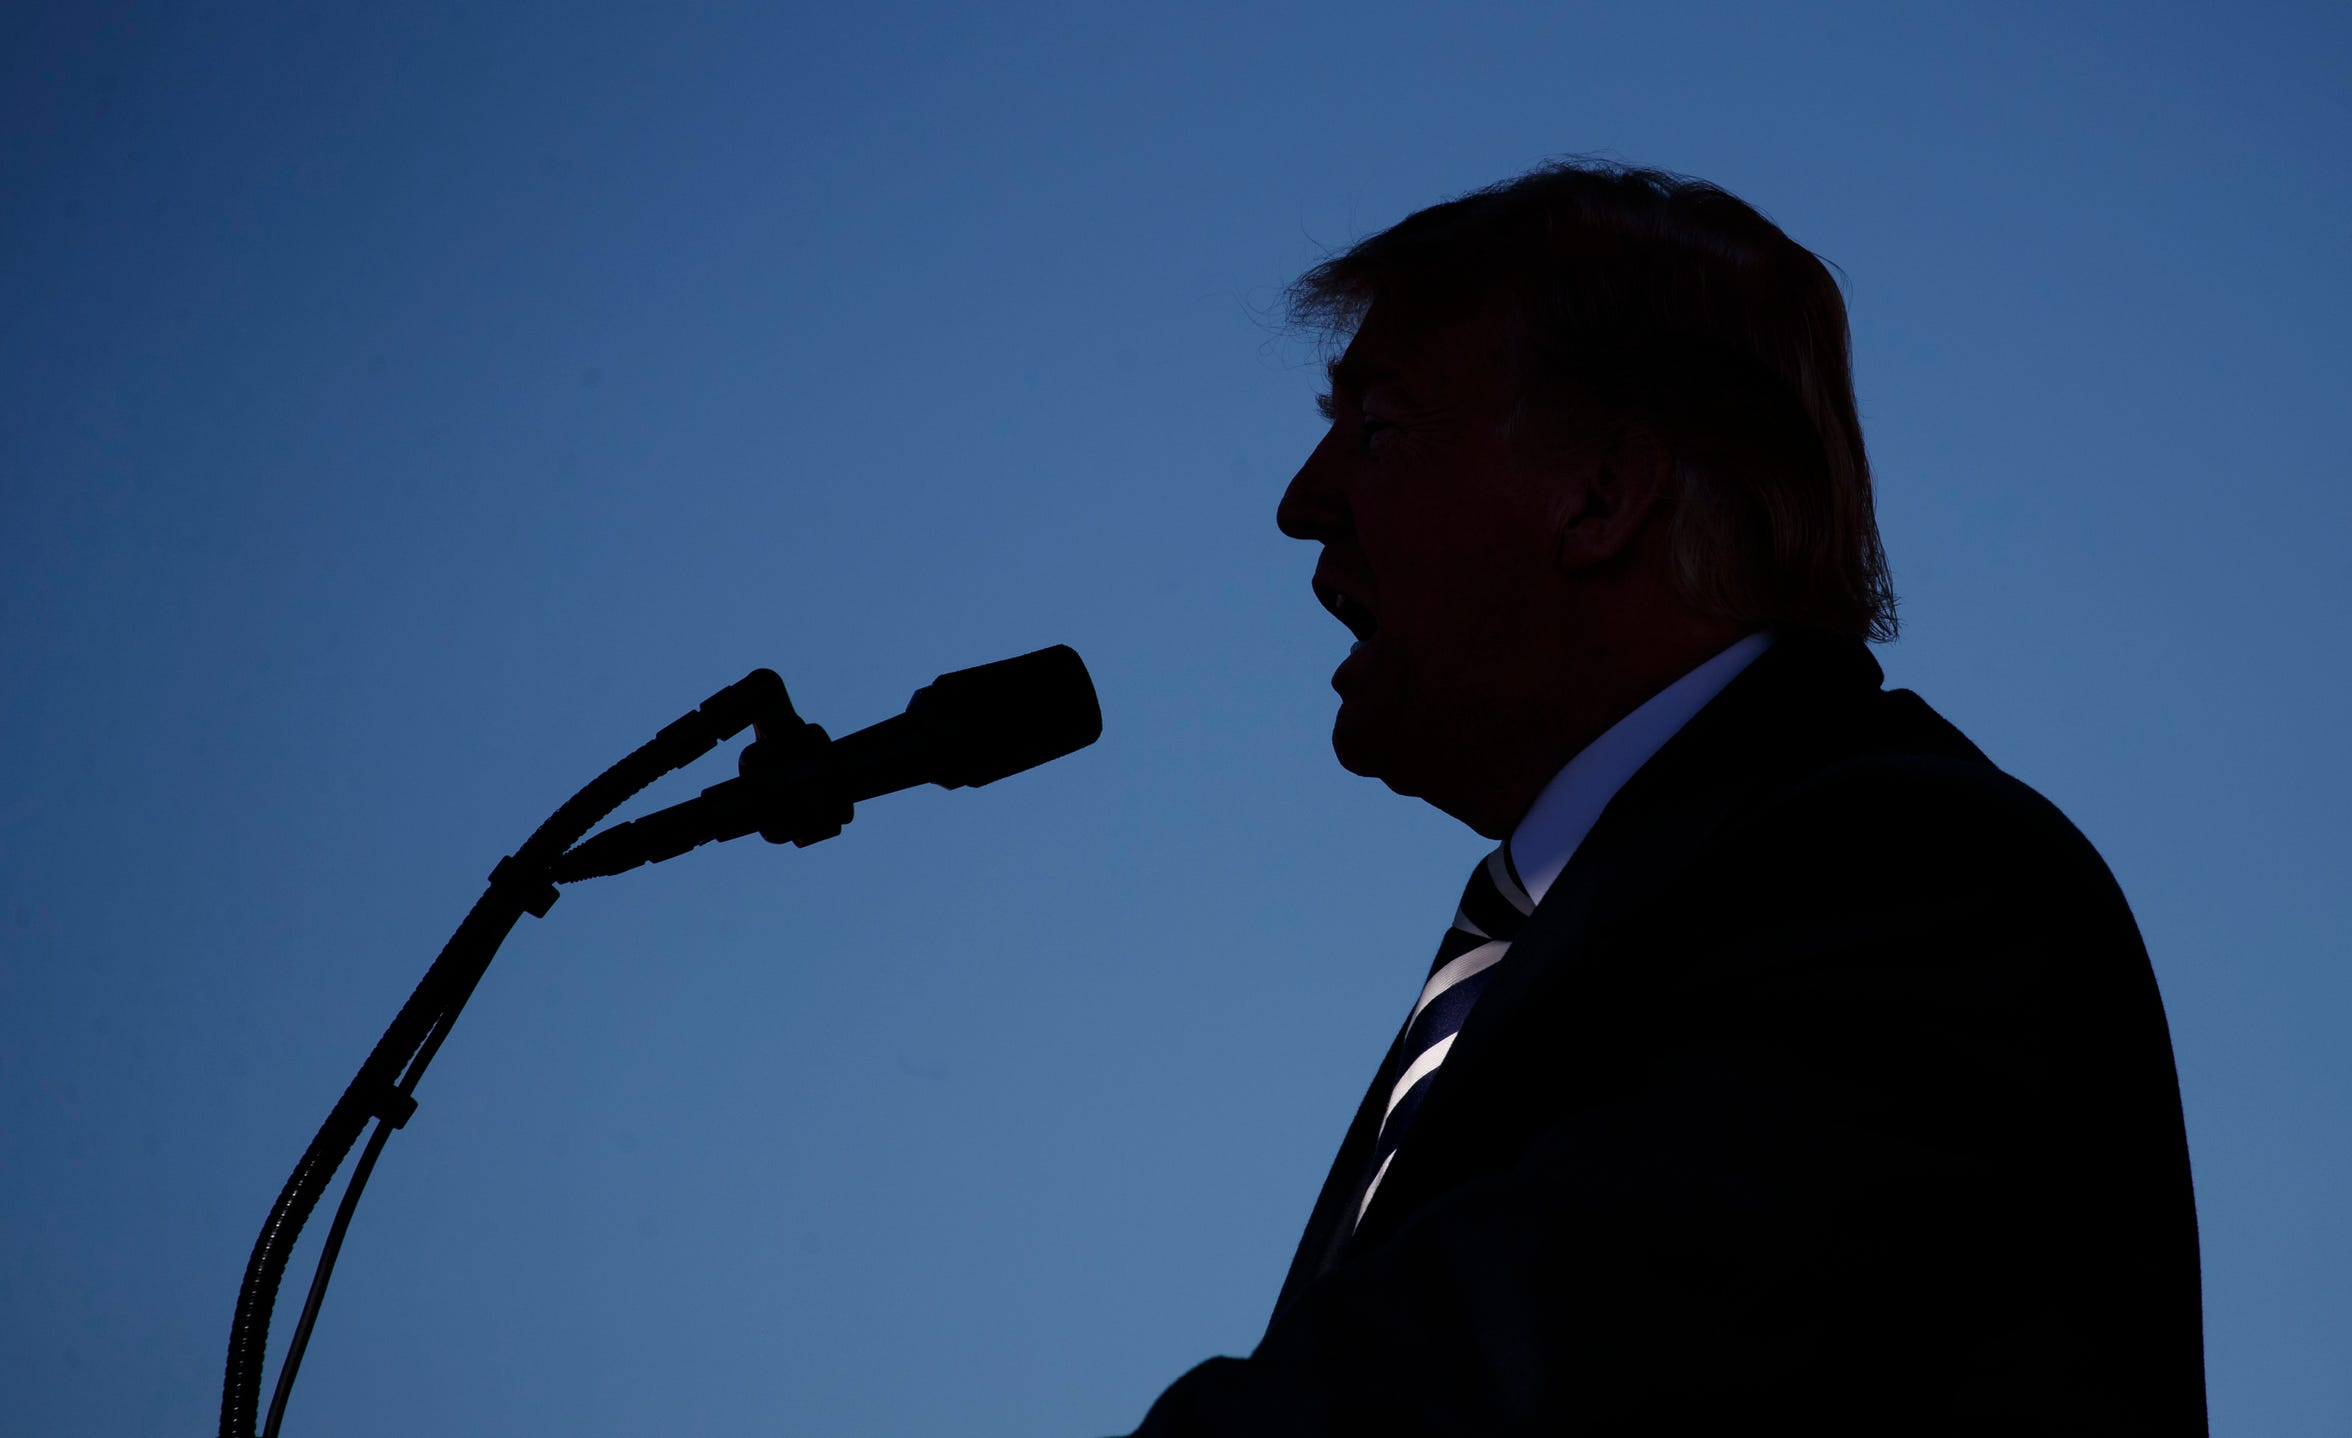 President Donald Trump speaks at Elko Regional Airport, Saturday, Oct. 20, 2018, in Elko, Nev., during a campaign rally. (AP Photo/Carolyn Kaster)